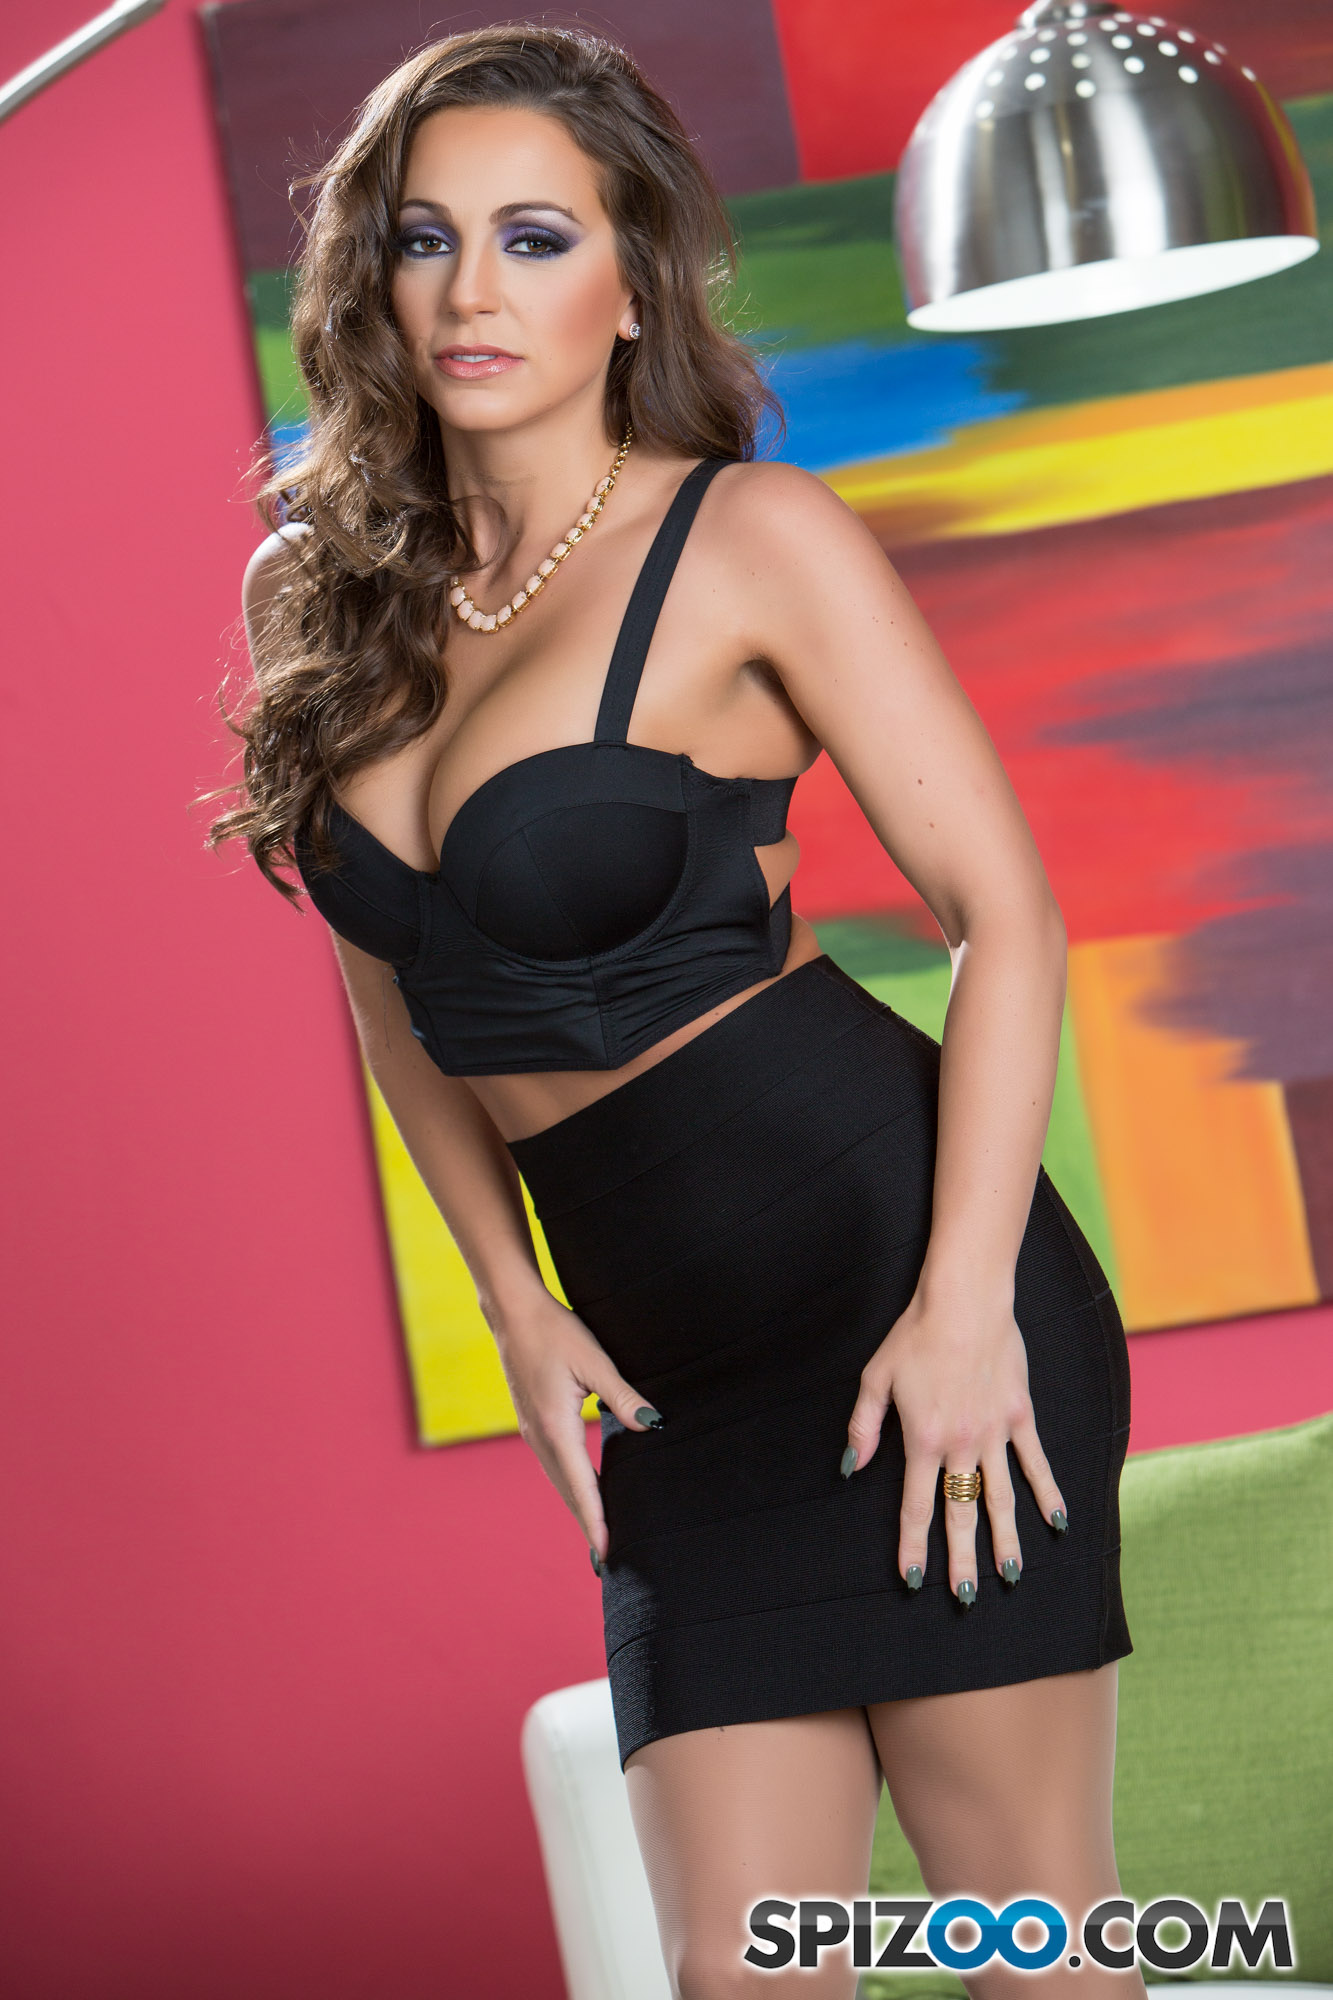 abigail mac videos